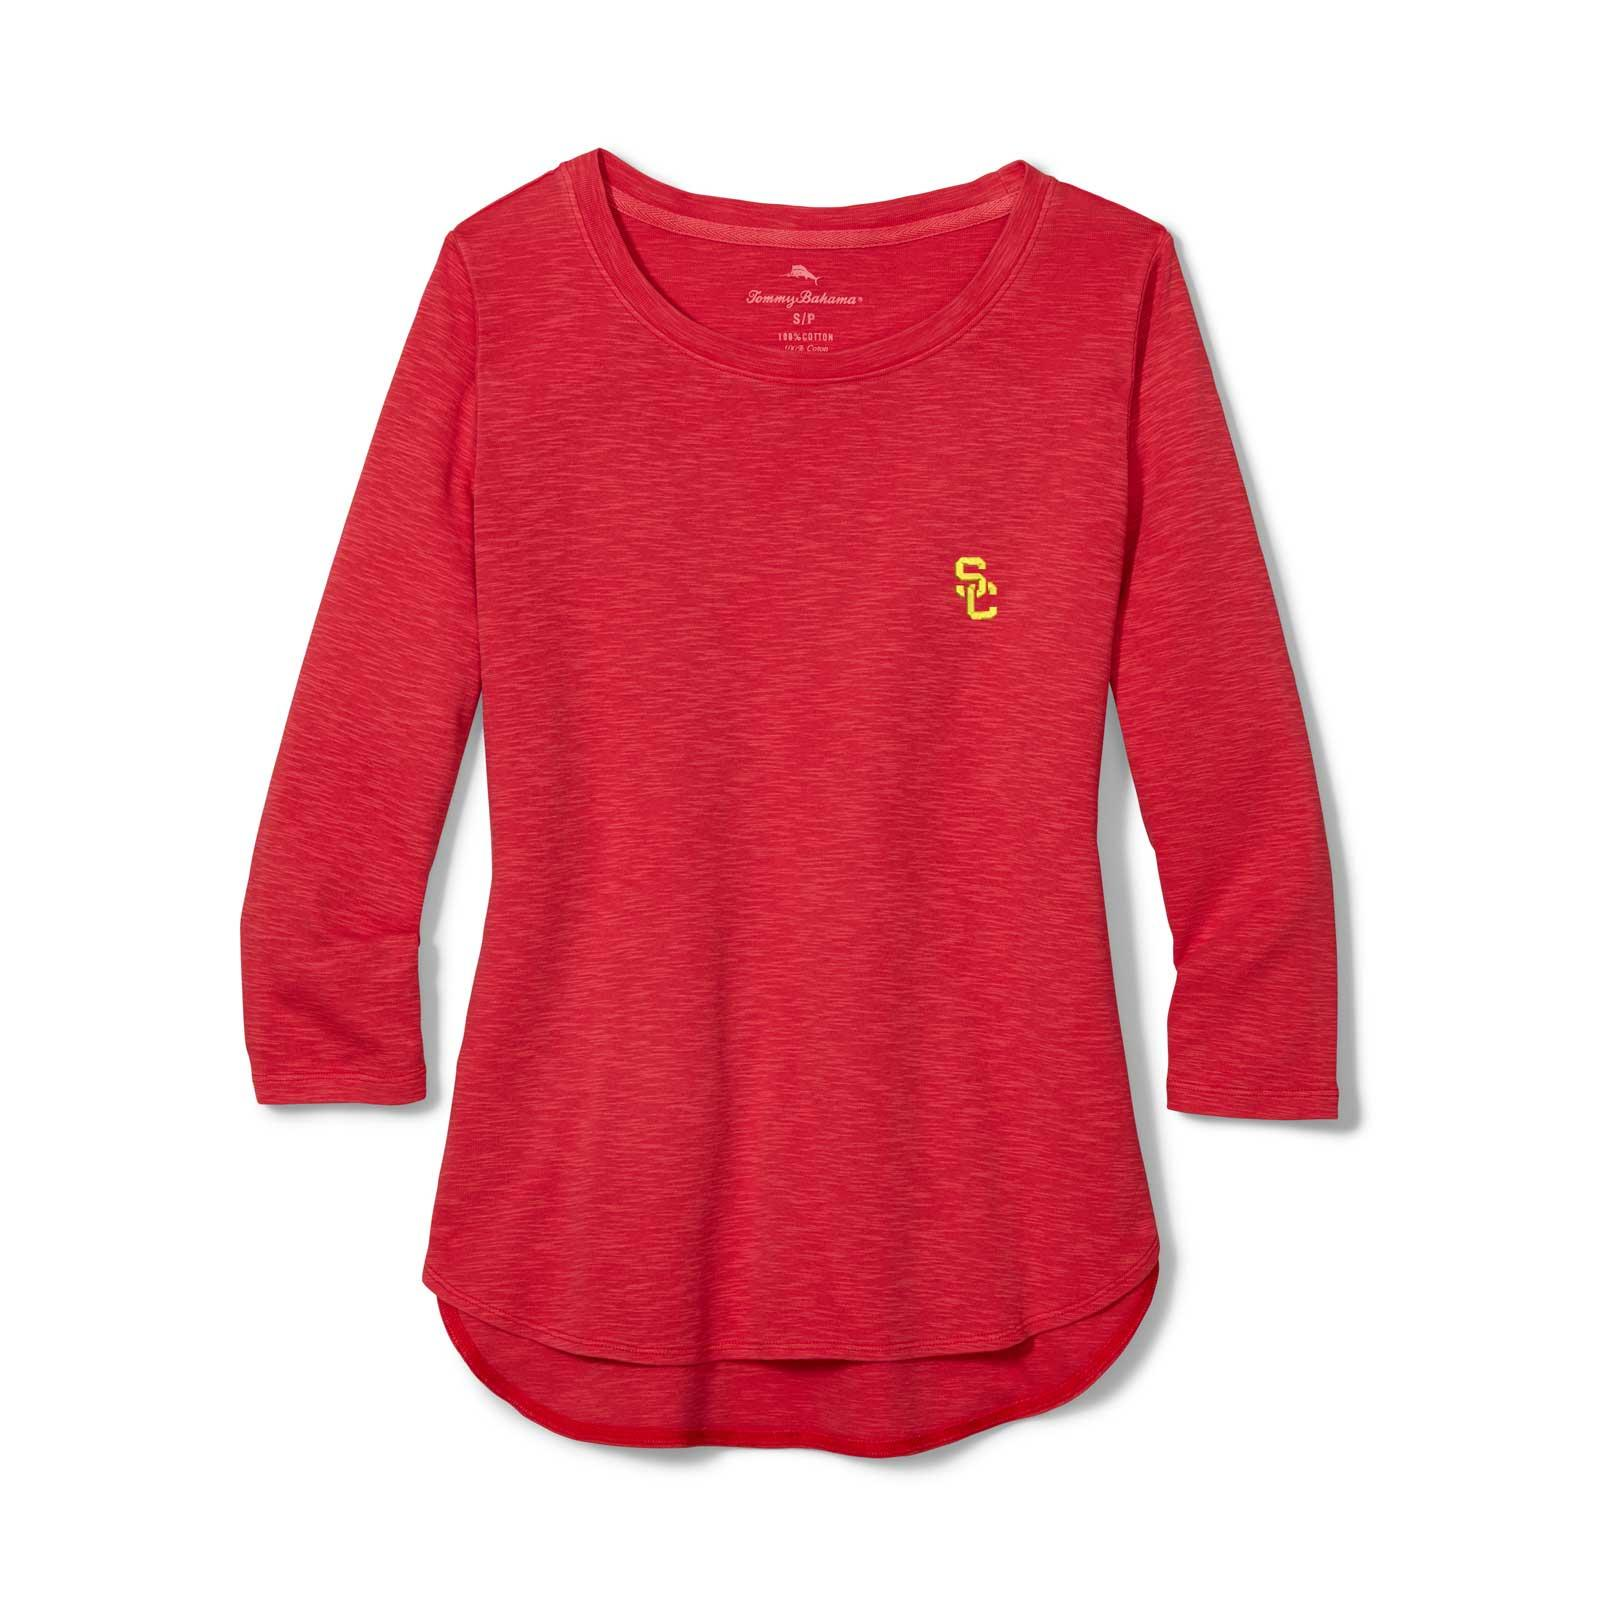 USC Trojans Women's SC Interlock Ashby Rib 3/4 Sleeve Top